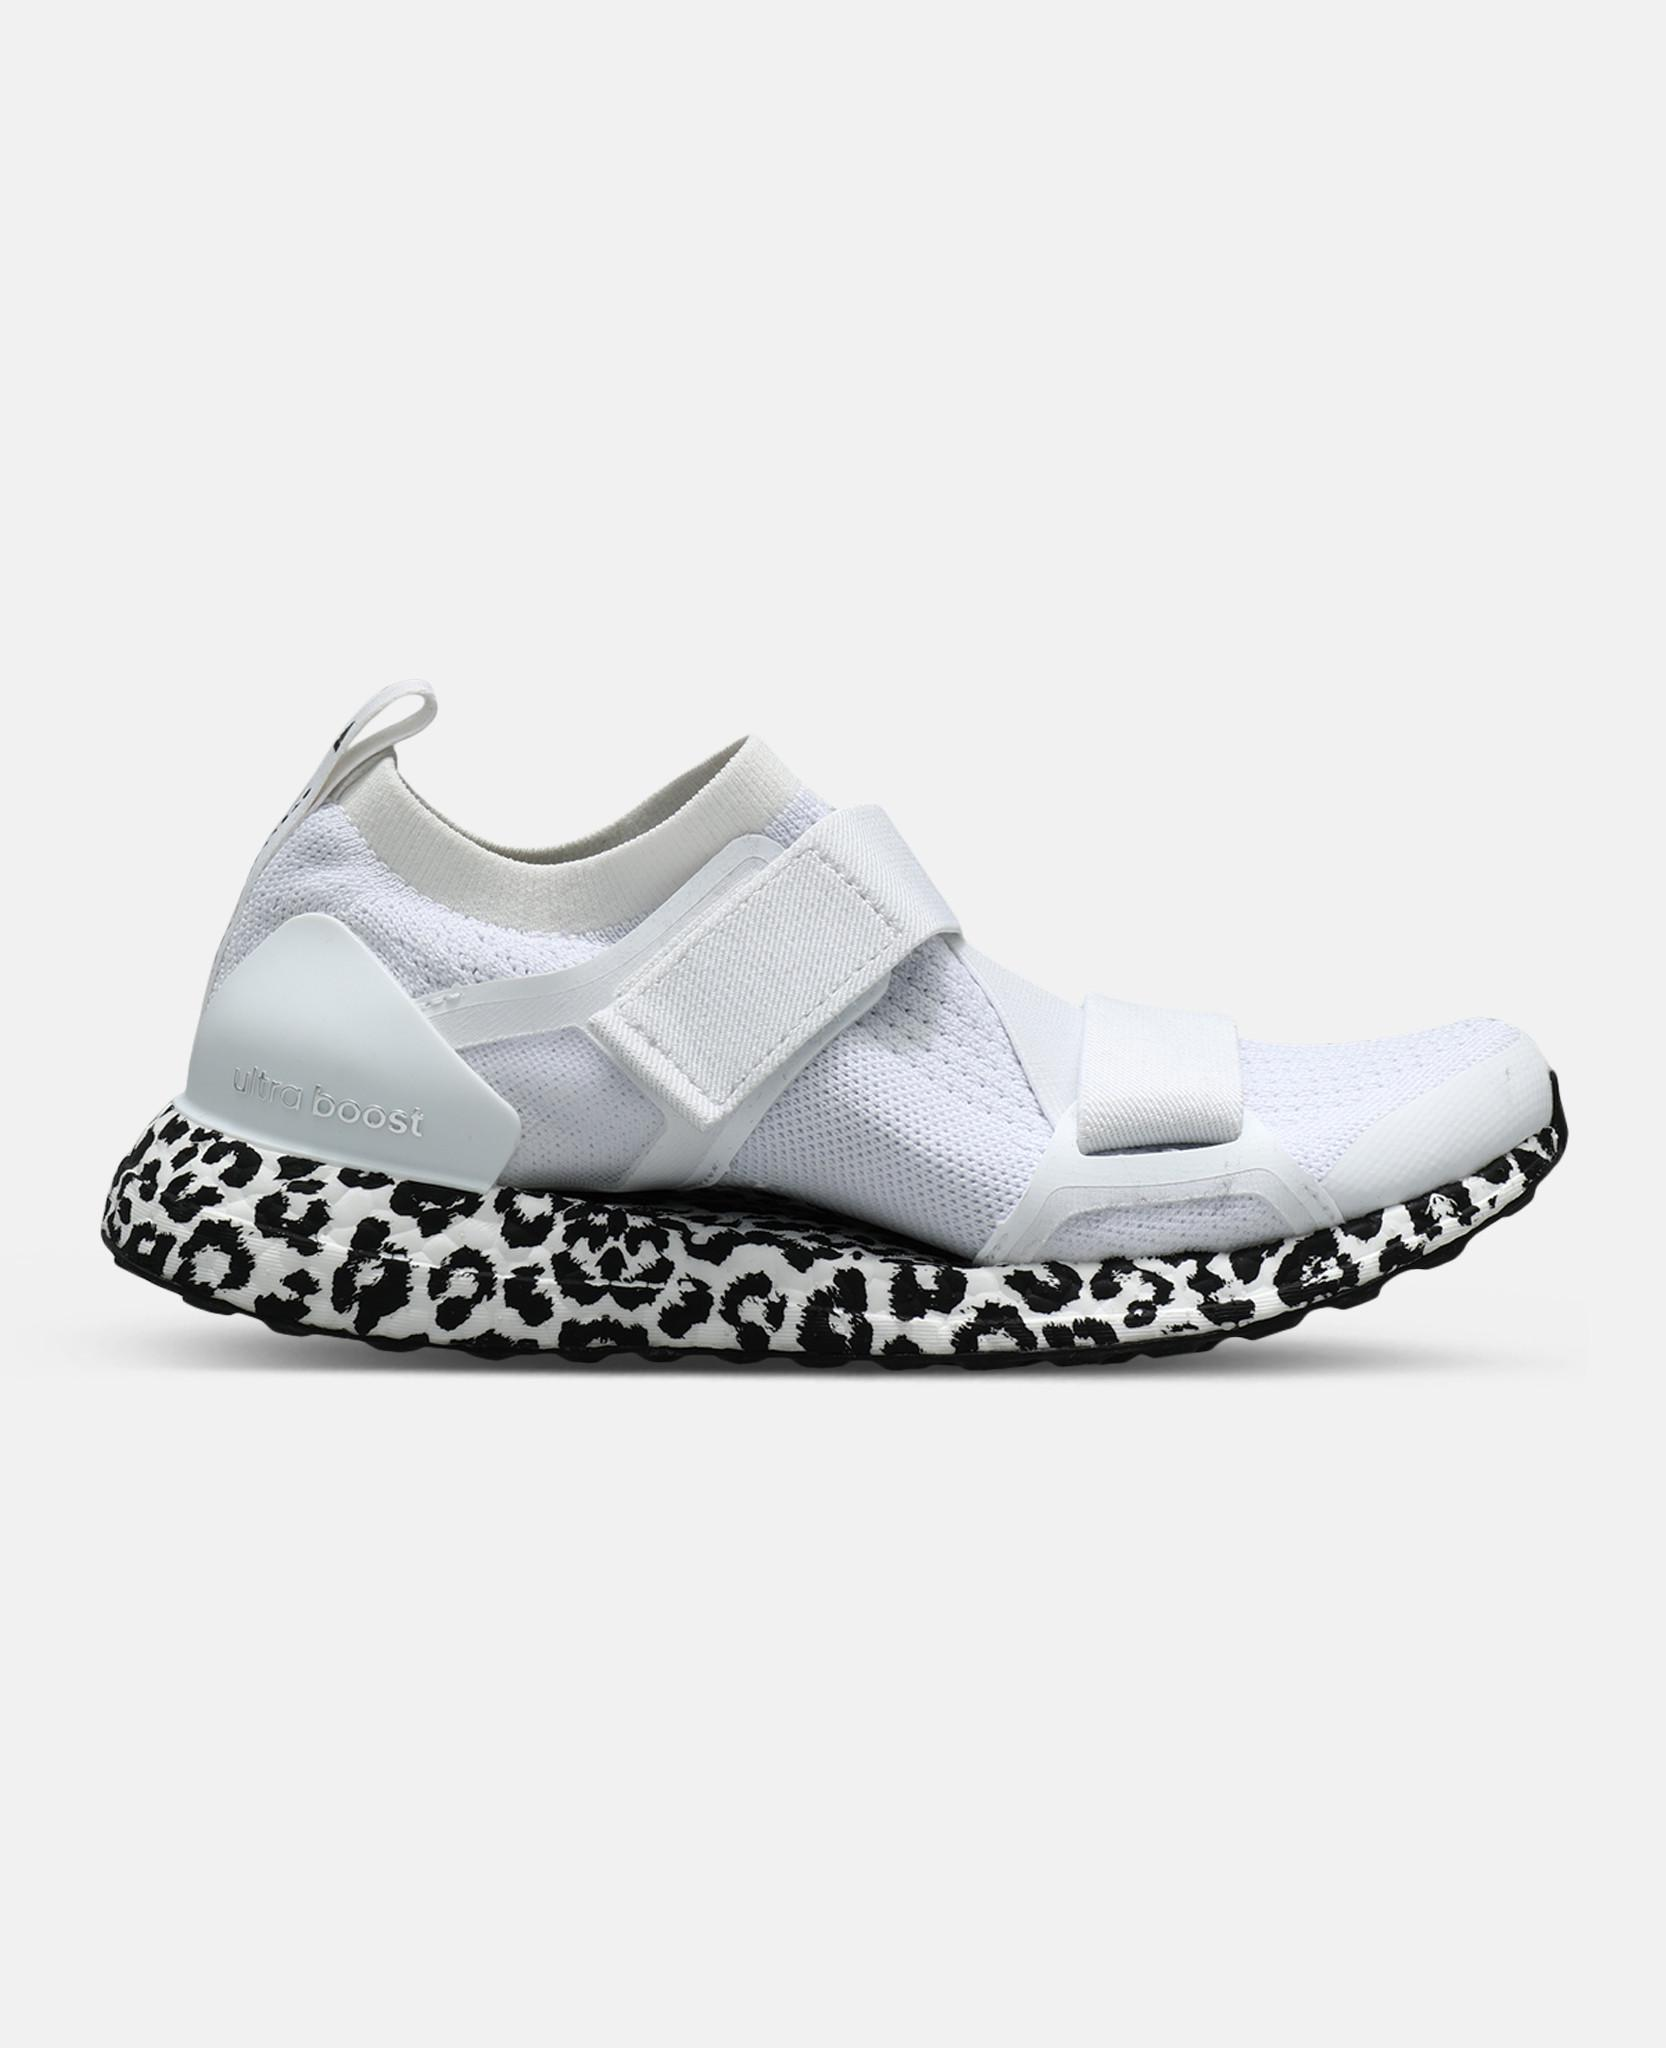 dae6f499c Lyst - Adidas By Stella Mccartney White Ultraboost X Sneakers in White